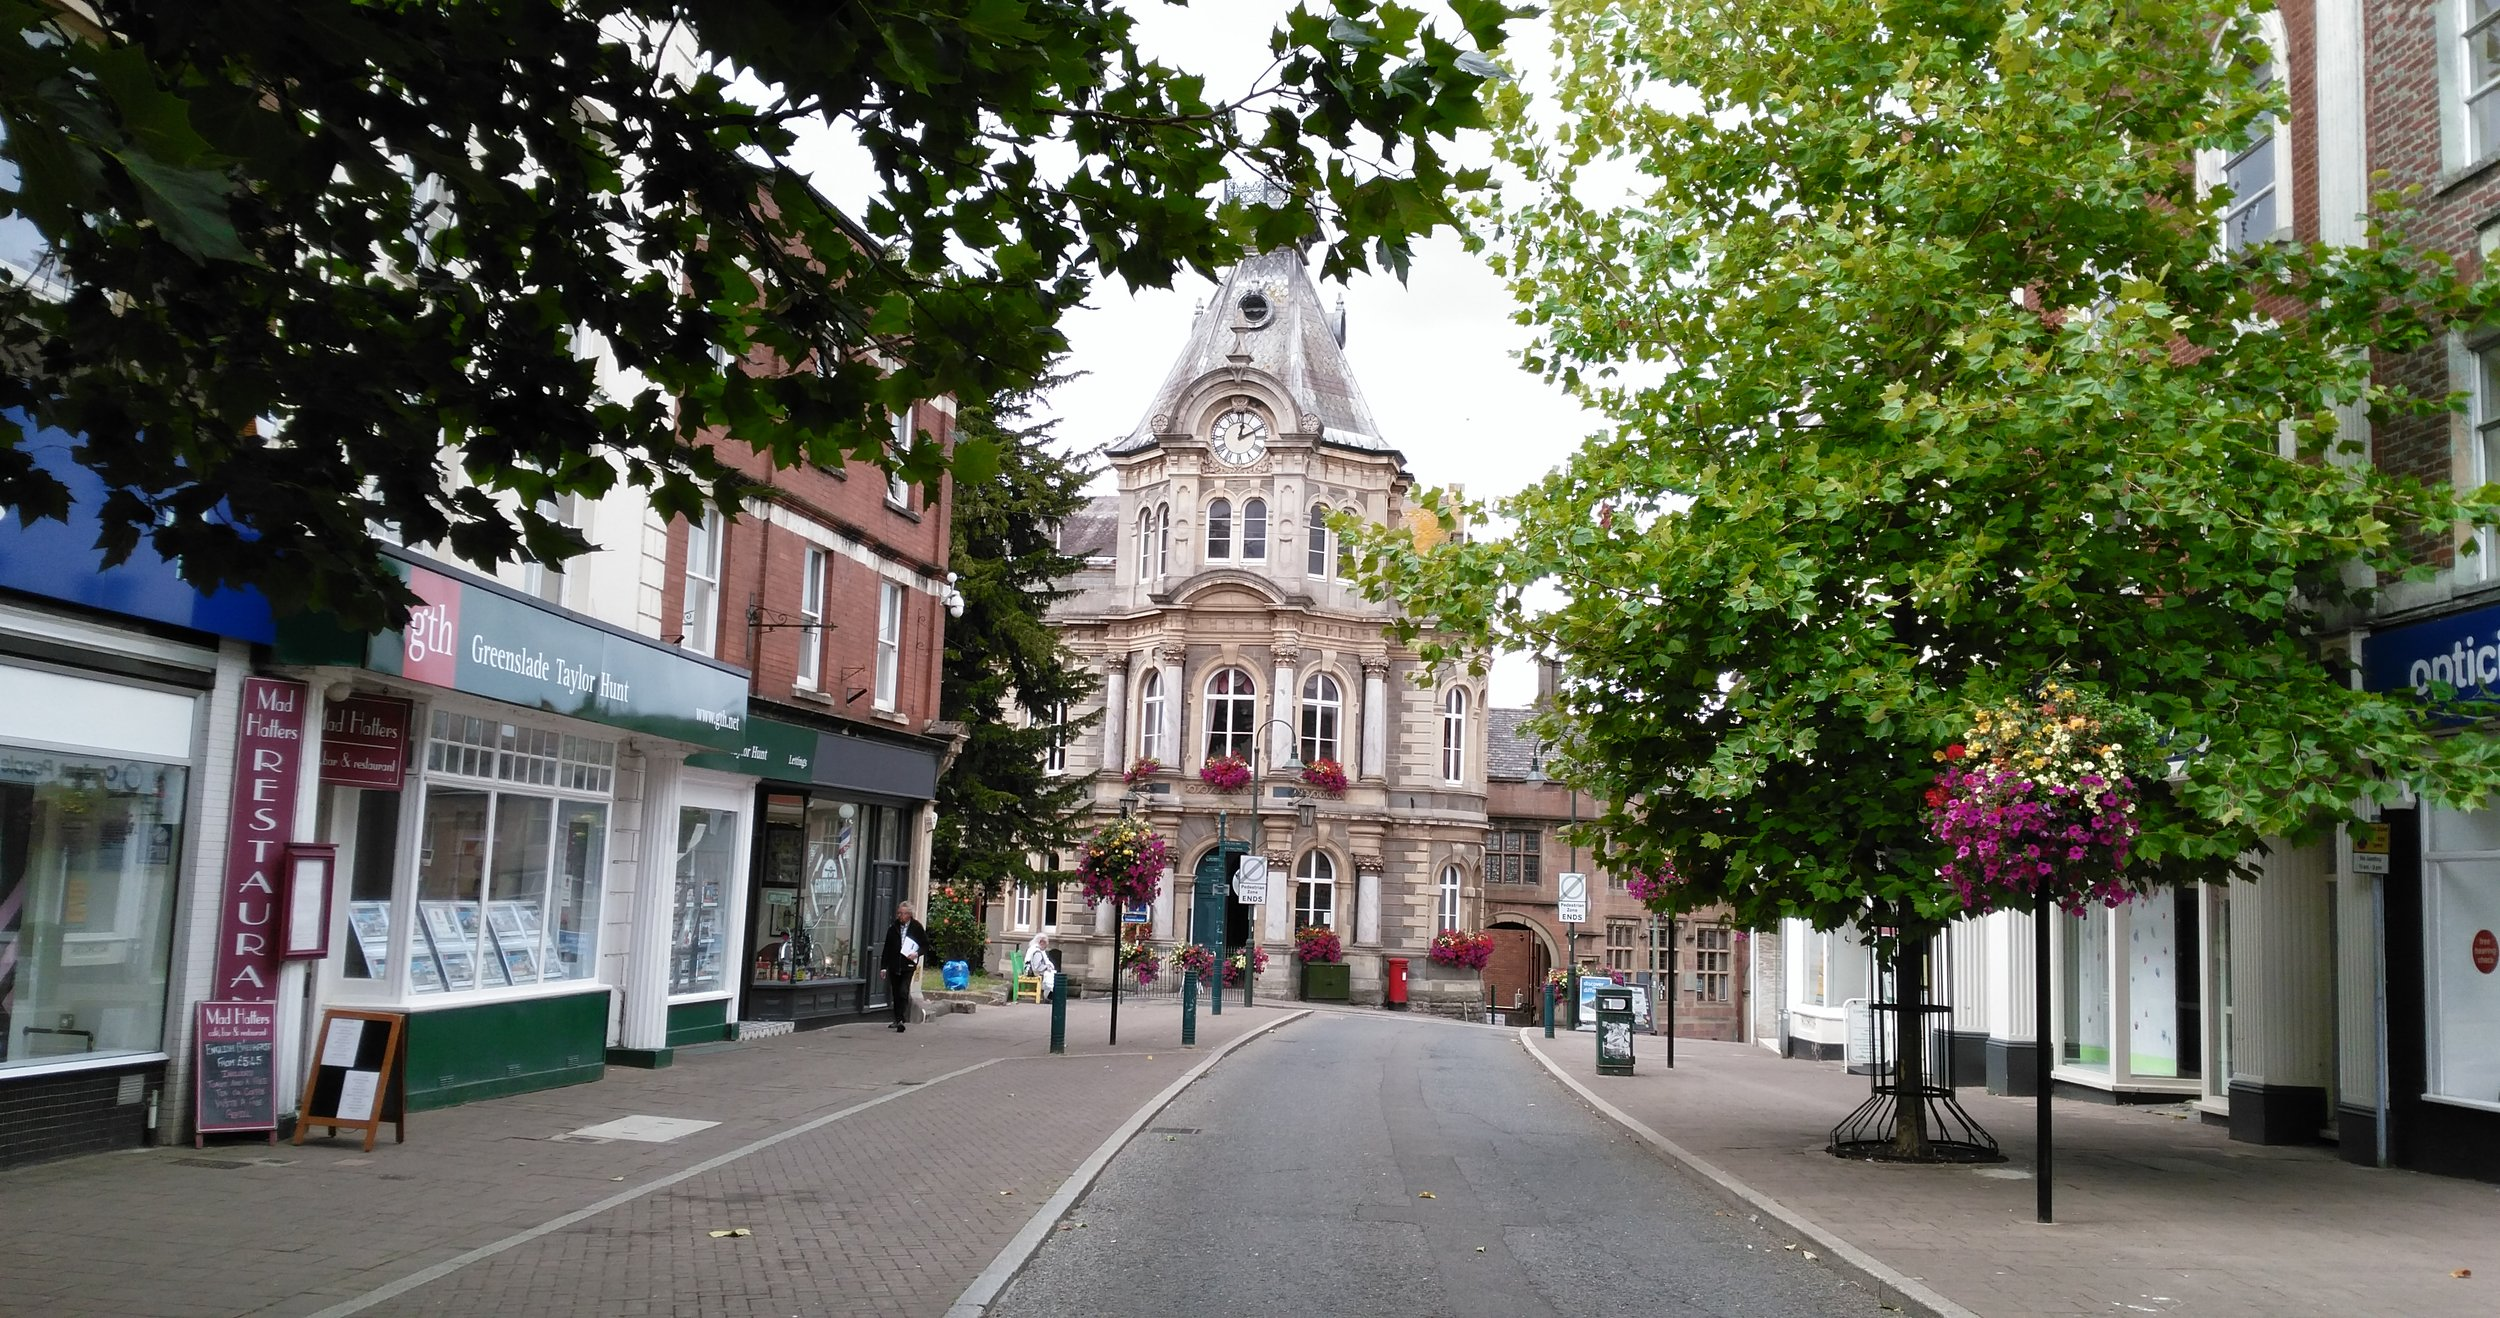 tiverton-town-council-offices.jpg